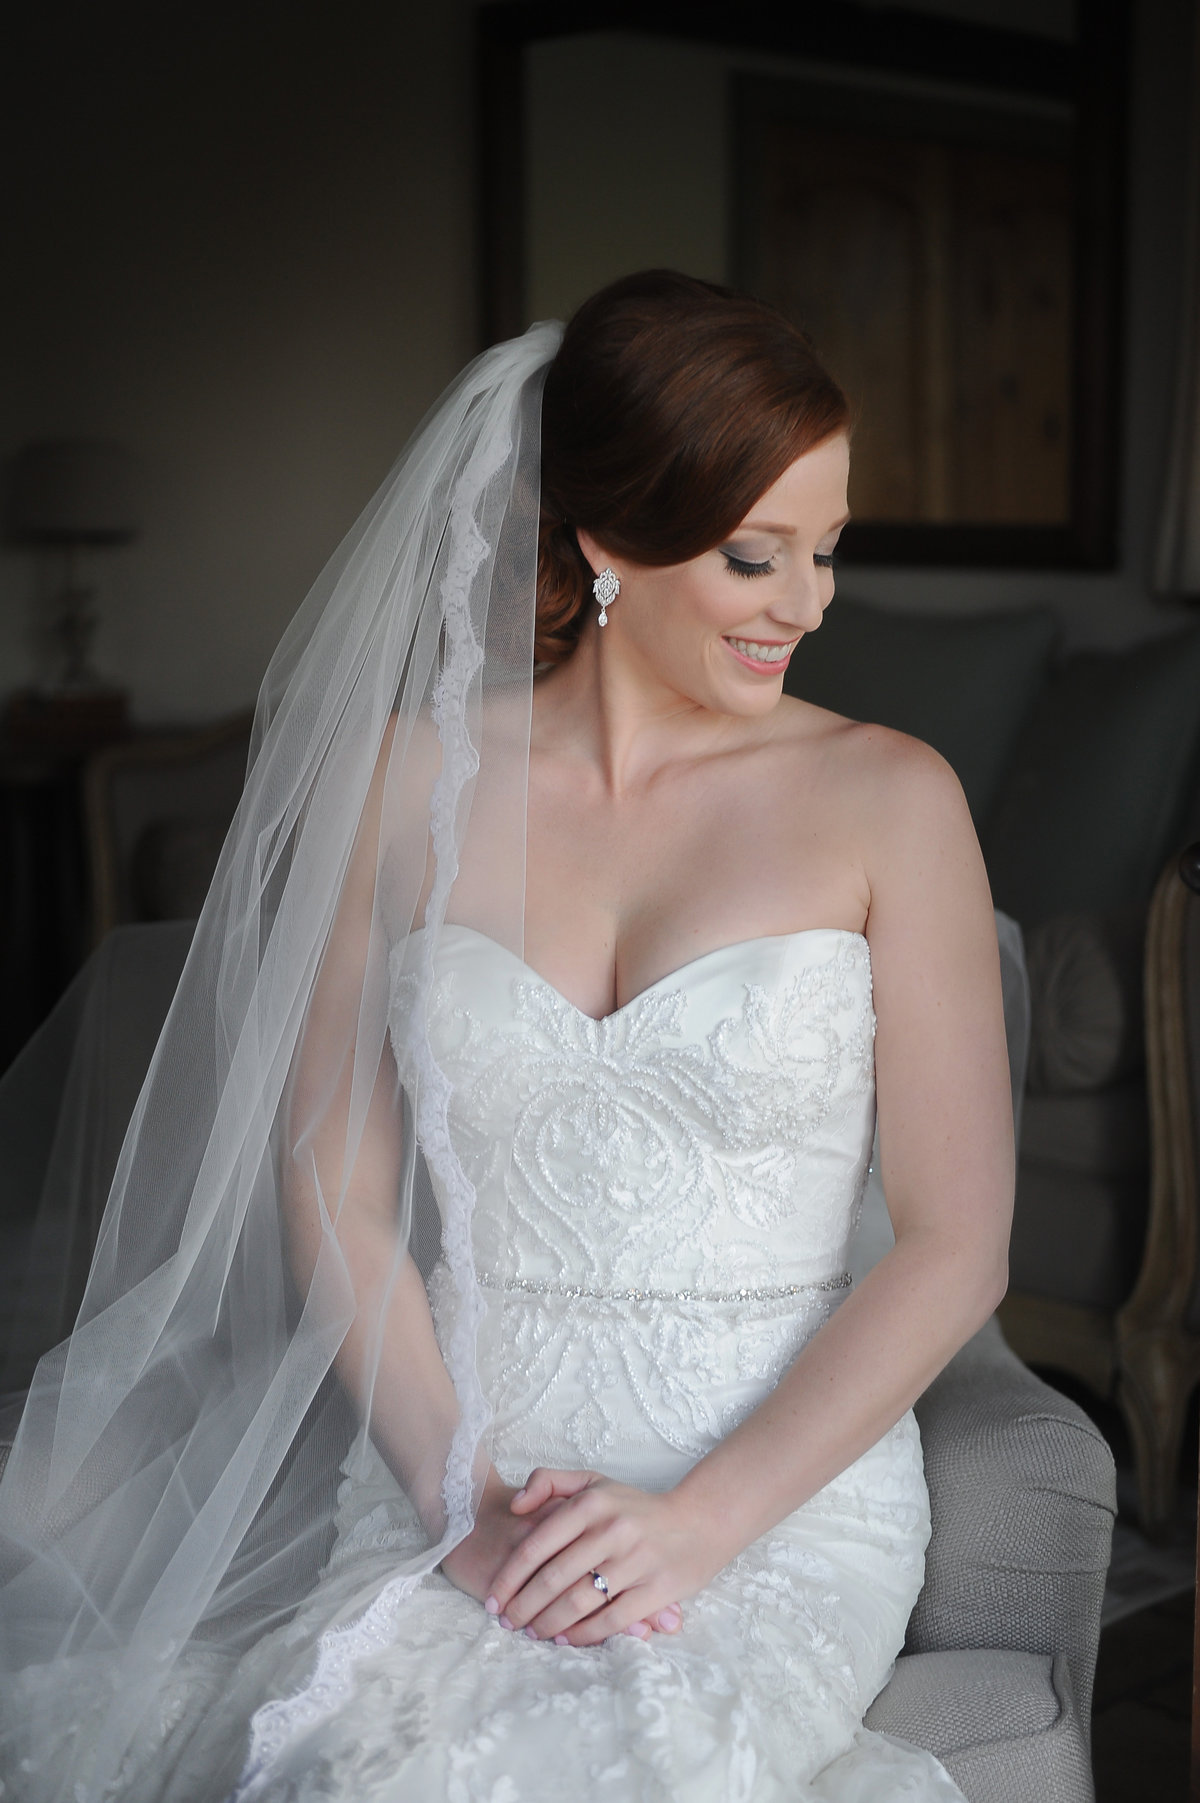 Courtney-Bridals-jessicafreyphotography-010